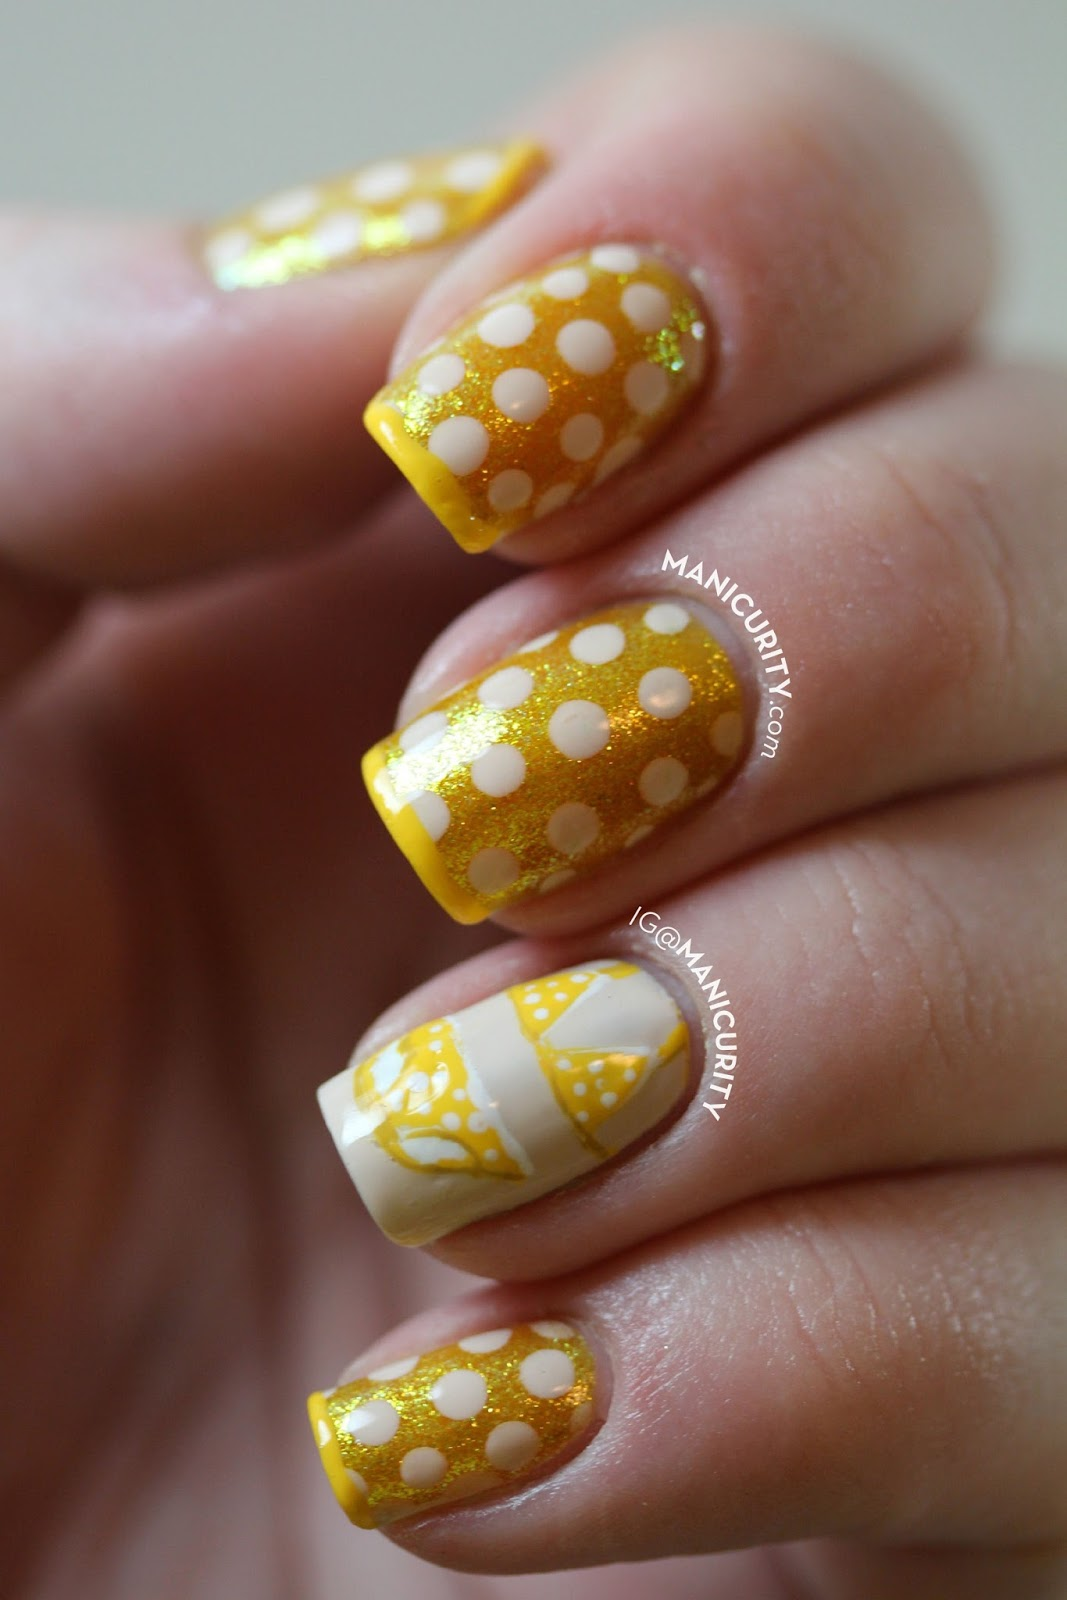 The Digit-al Dozen: Itsy Bitsy Teeny Weeny Yellow Polka Dot Bikini Nails - dotticure and freehand bikini nail art | Manicurity.com @emmathea